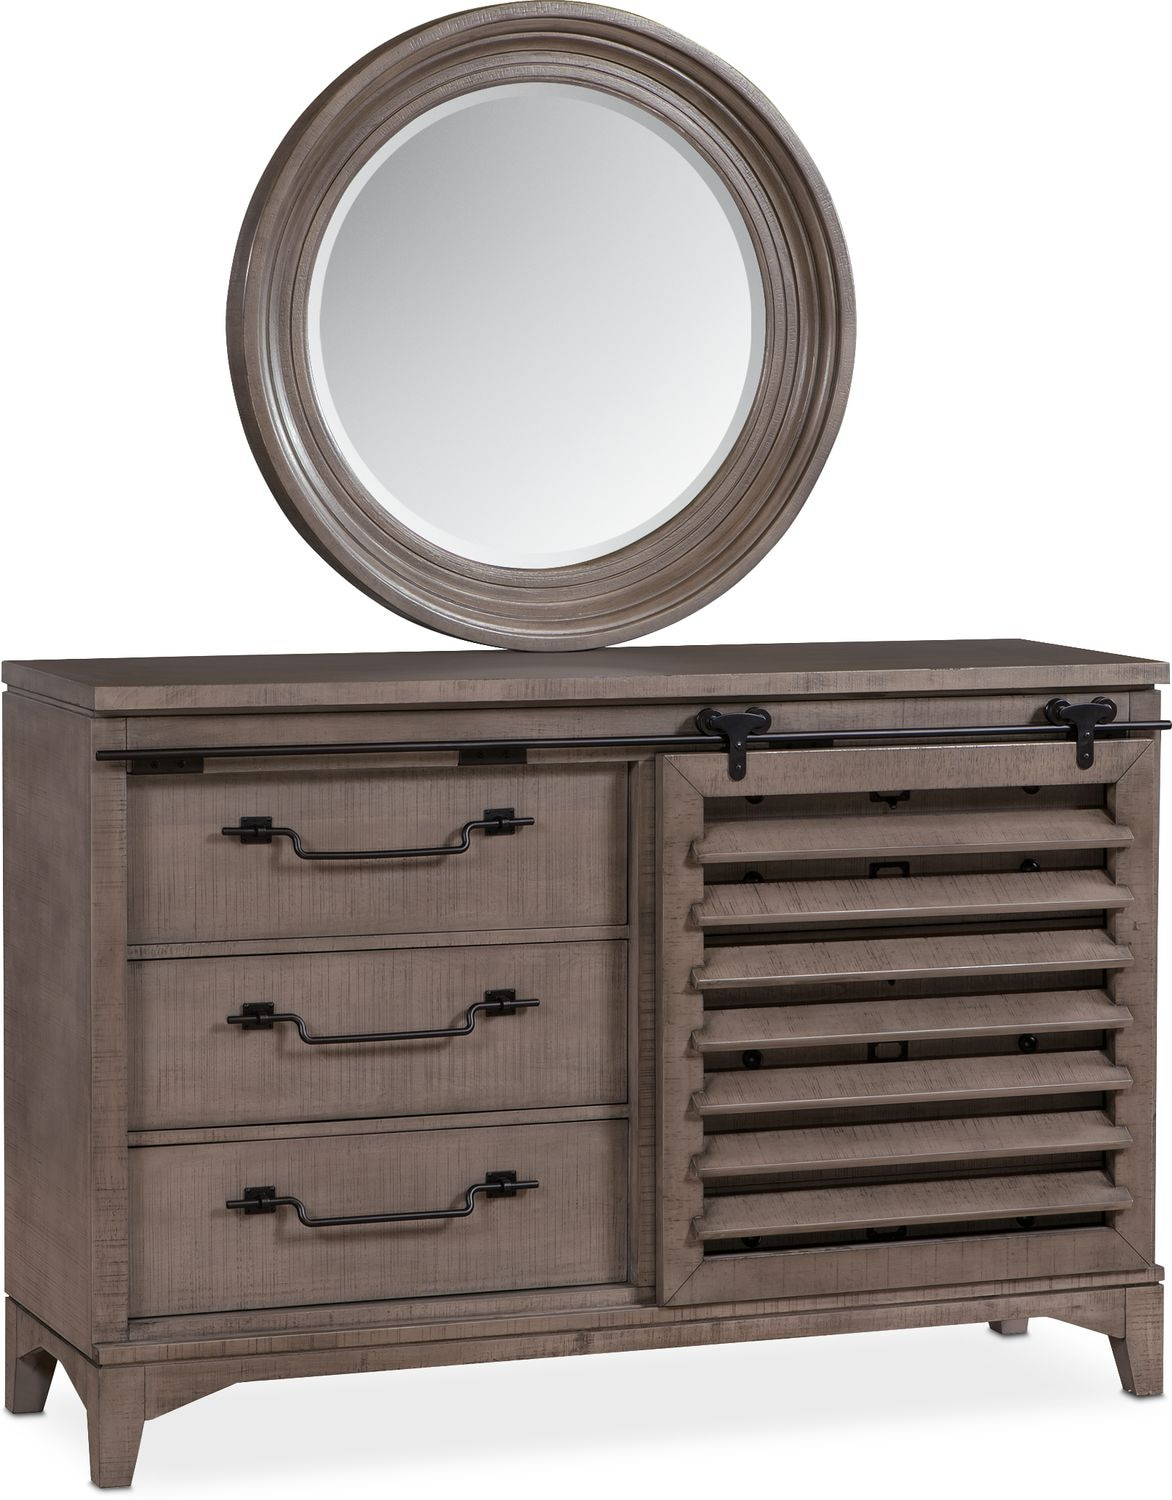 Bedroom Furniture - Gristmill Dresser and Mirror